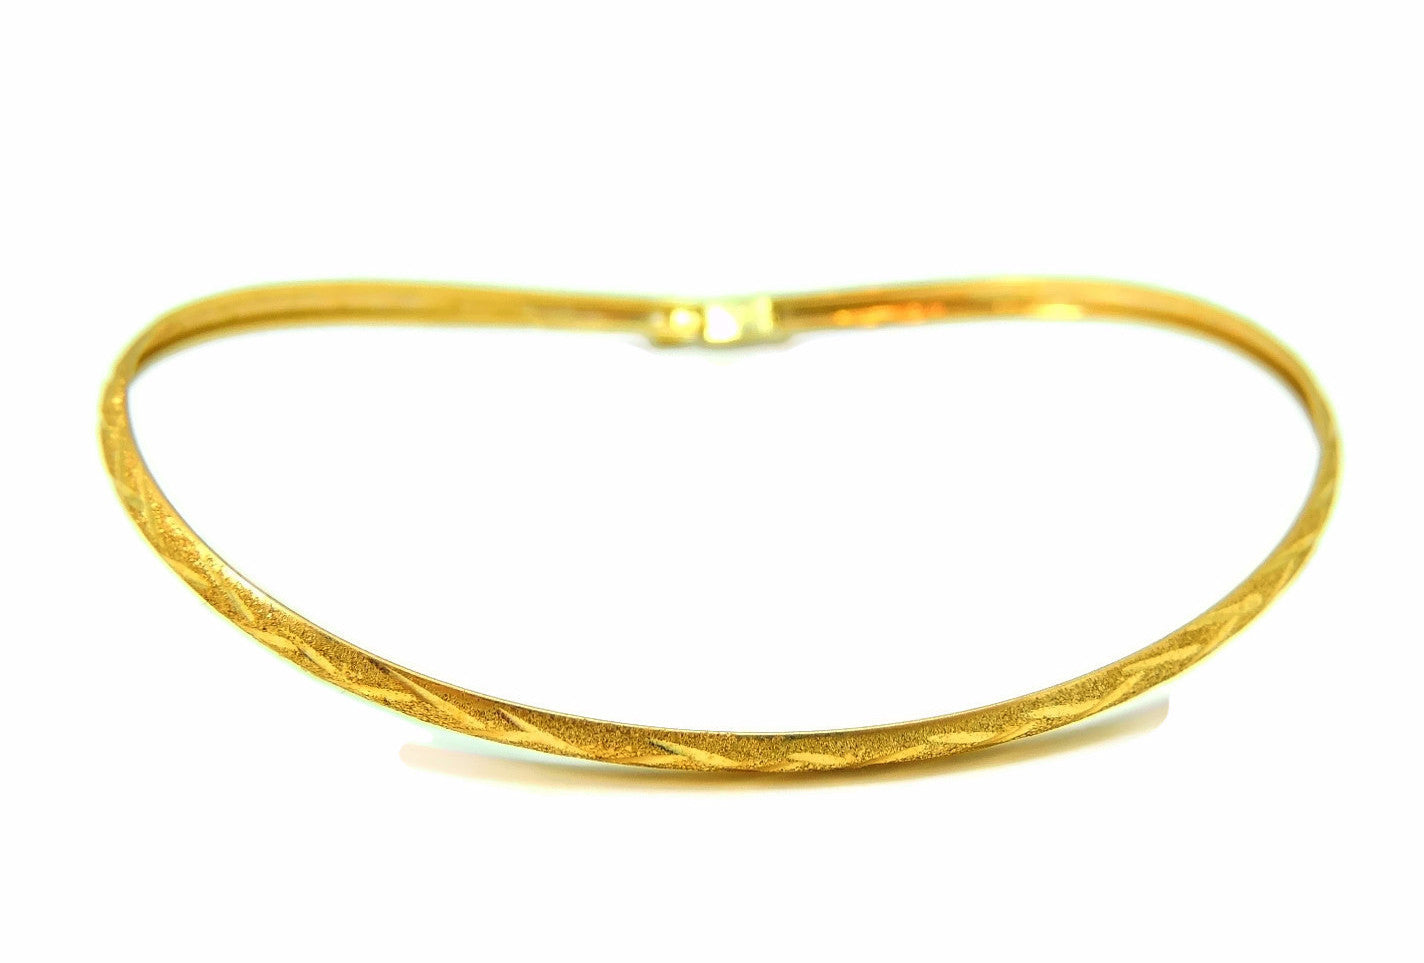 b hei bracelet sharpen jewelry sears prod gold wid bangles charm op bangle bracelets